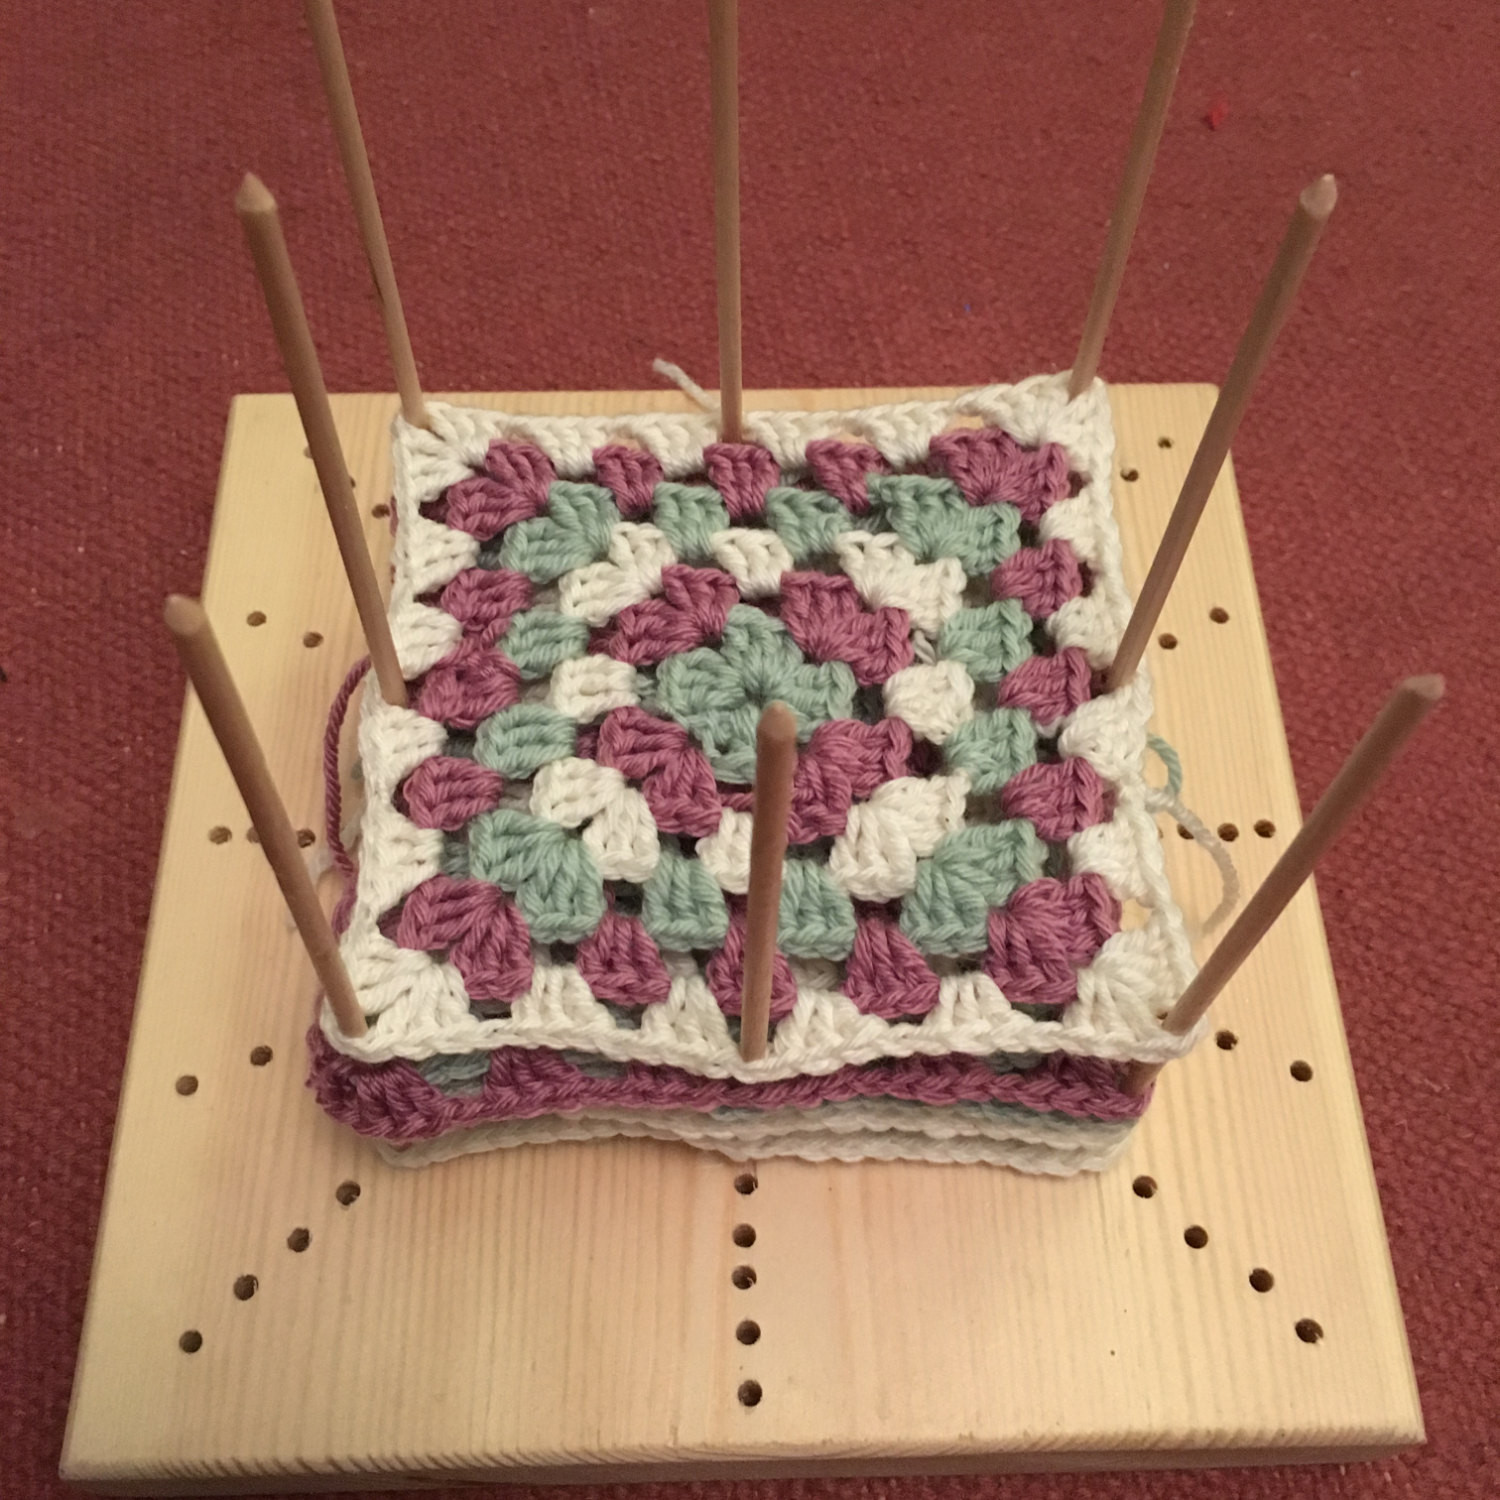 Crochet Blocking : Crochet Blocking Board - I Like Crochet